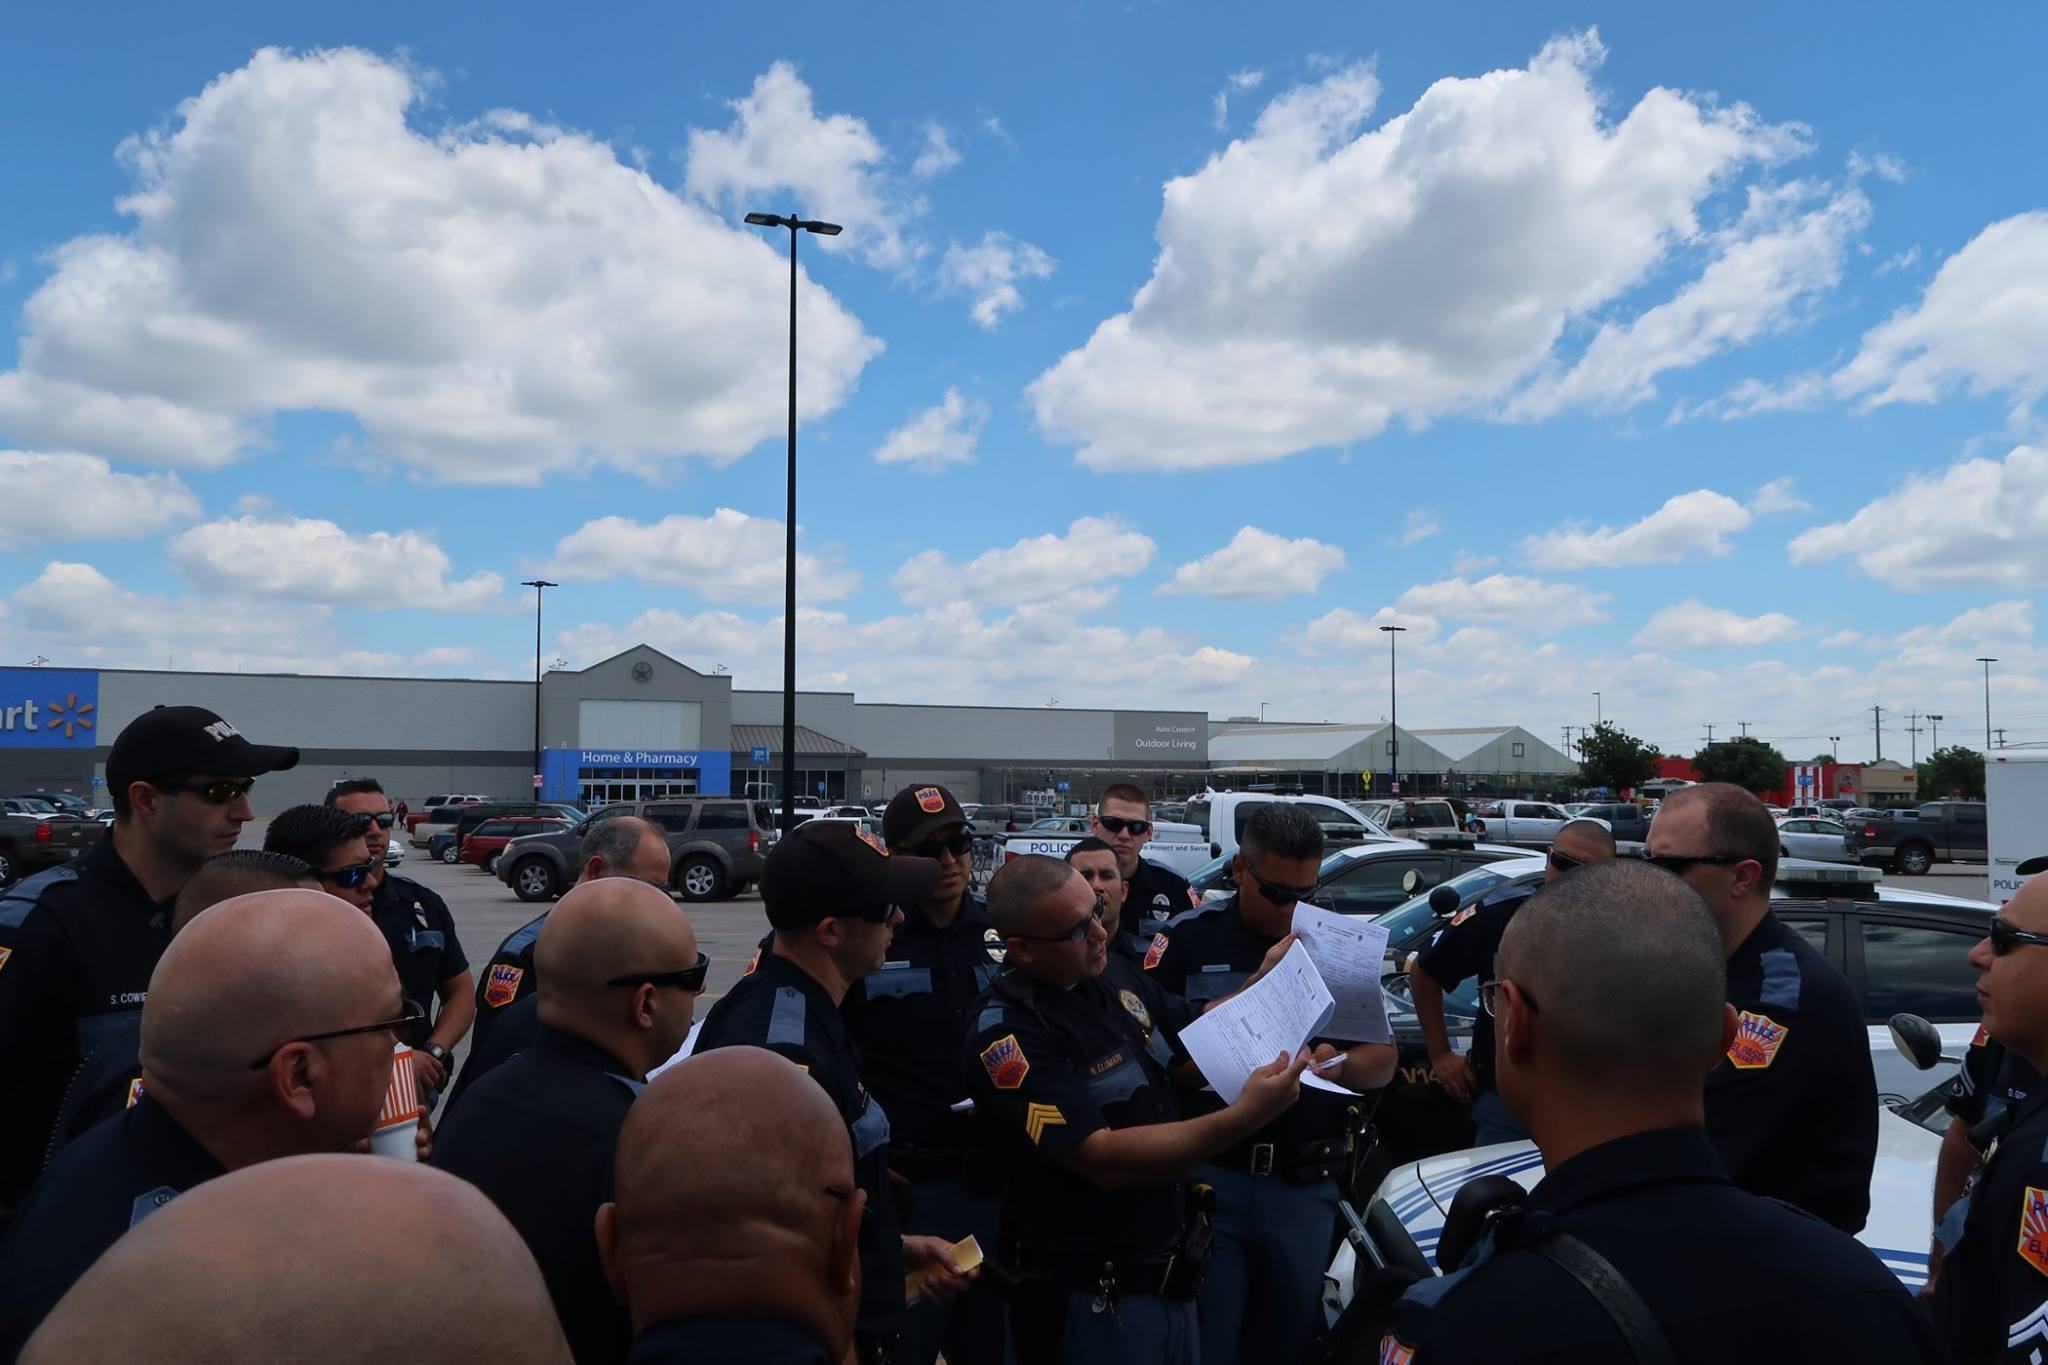 Officers with the El Paso Police Department were collecting water donations in San Antonio for those affected by Harvey. Credit: City of El Paso.